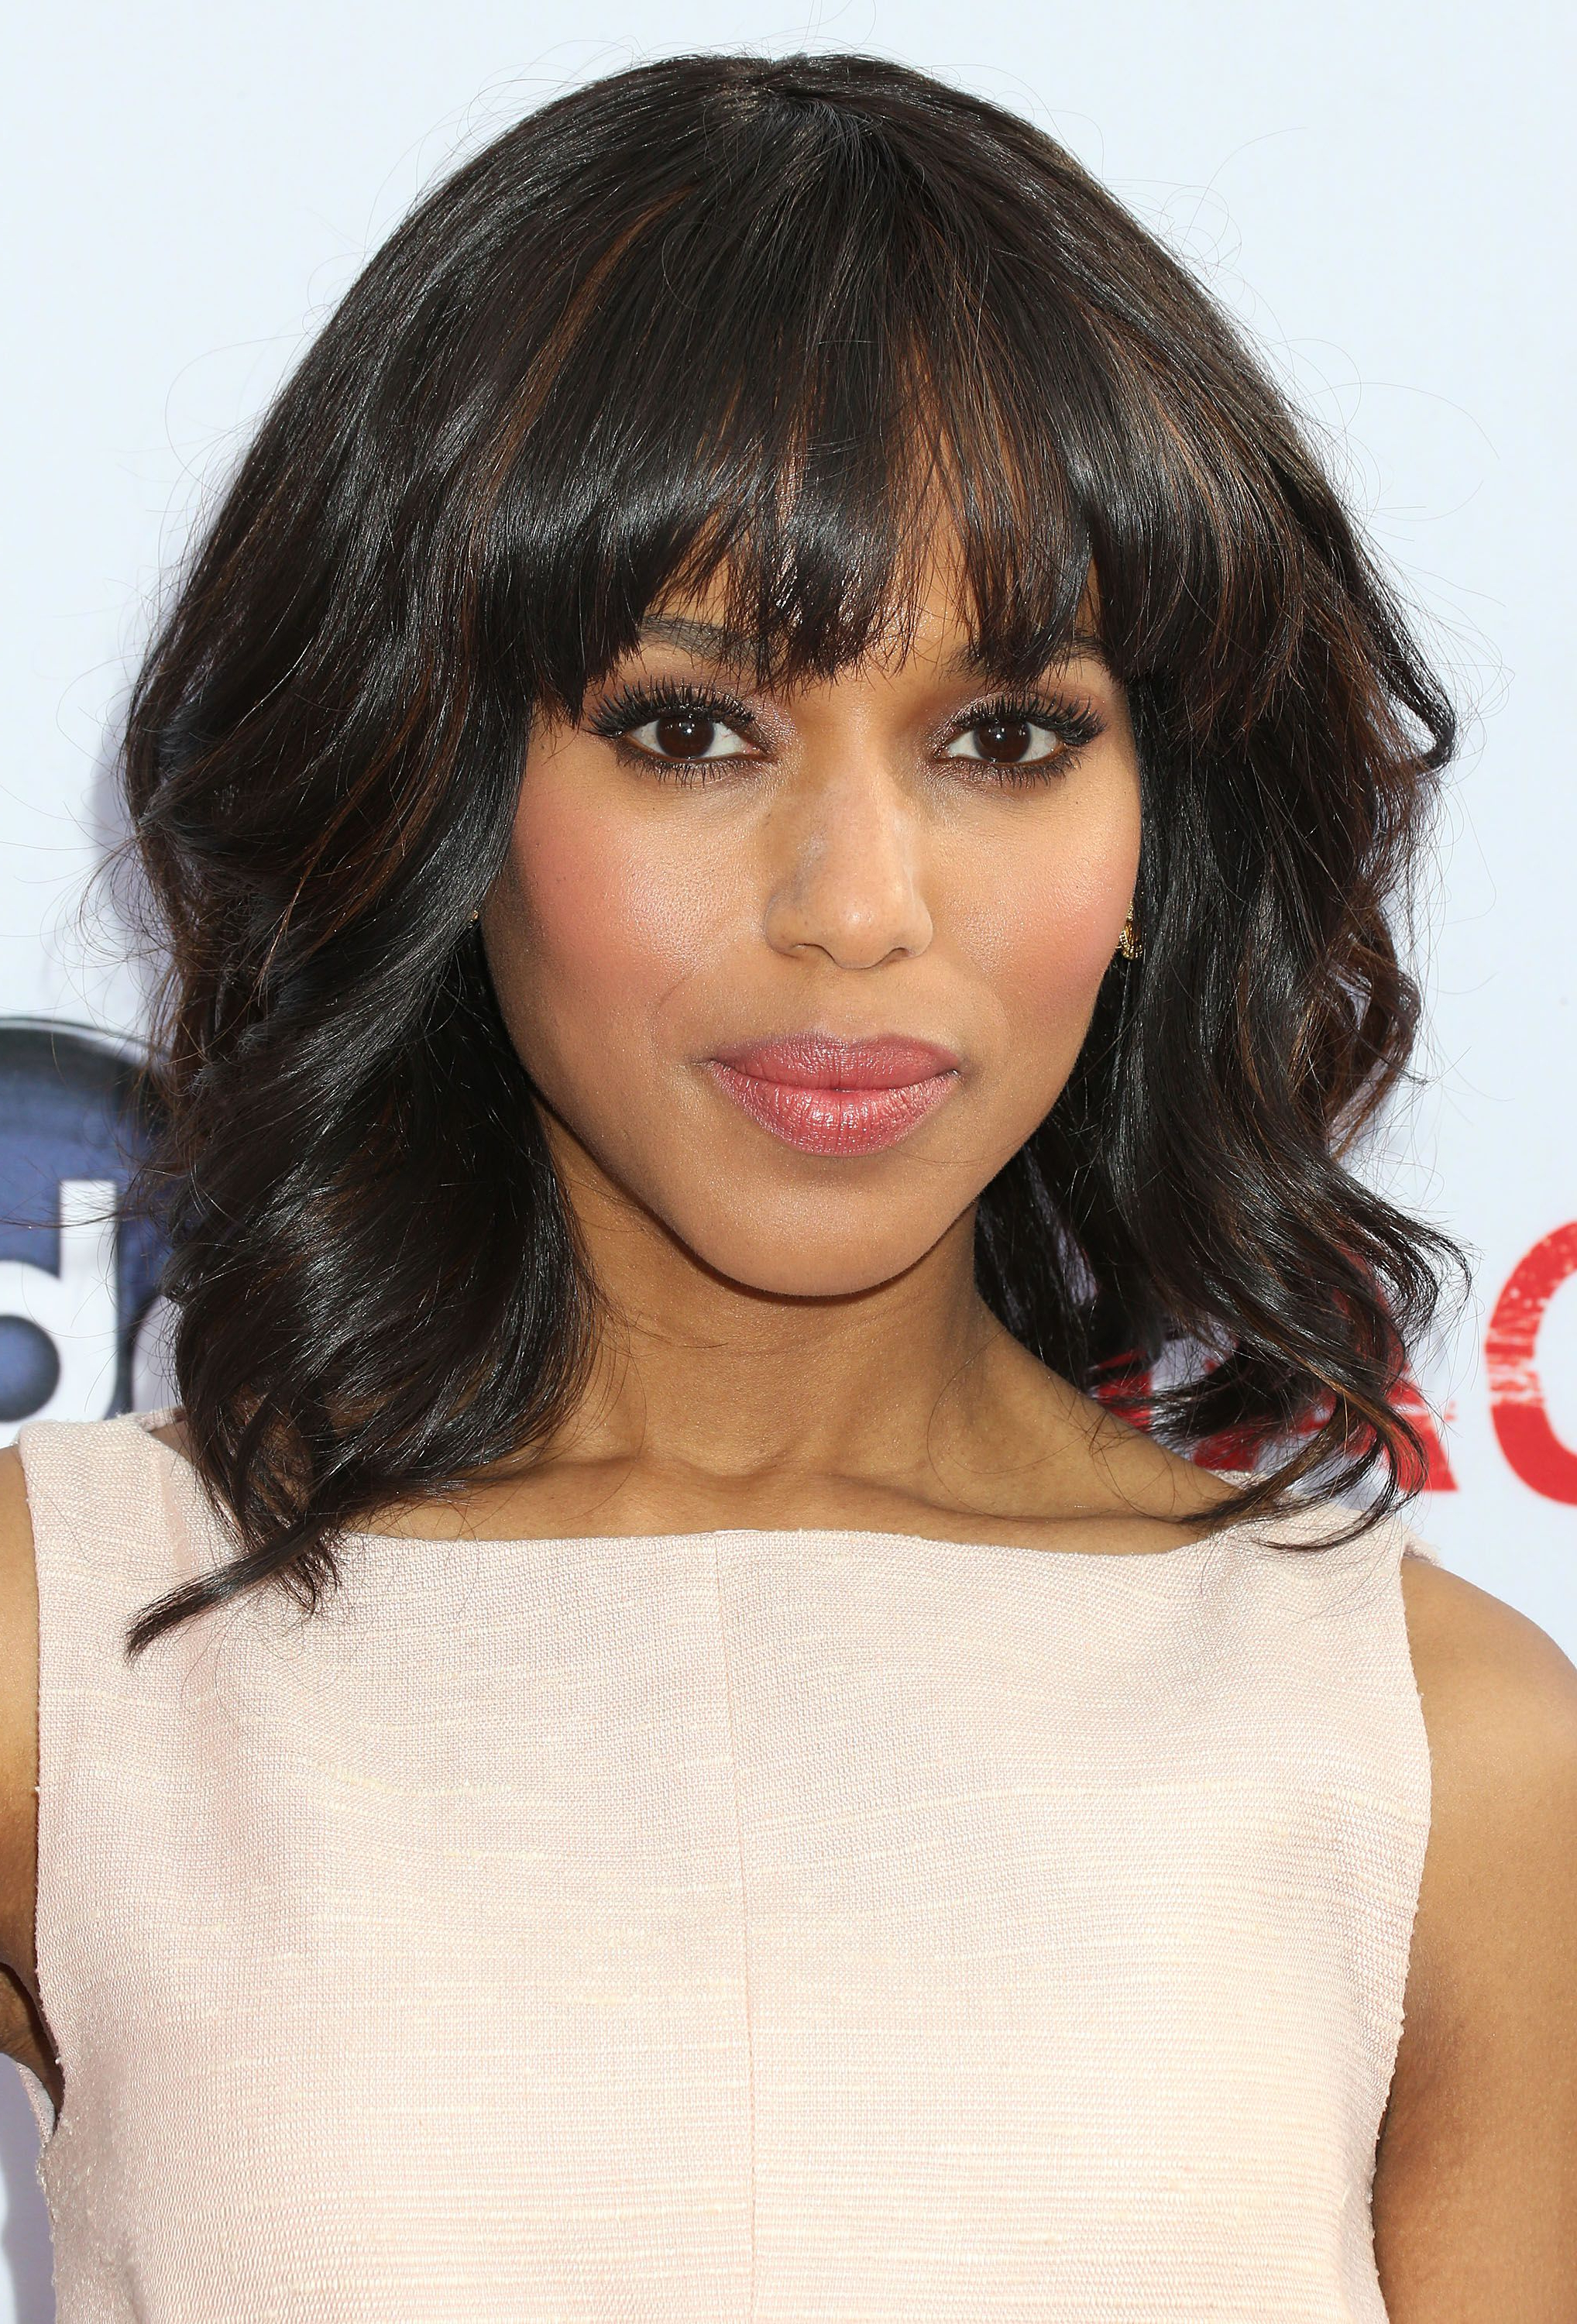 35 Best Hairstyles With Bangs – Photos Of Celebrity Haircuts With Bangs Regarding Well Known Medium Haircuts With Layers And Side Swept Bangs (View 3 of 20)